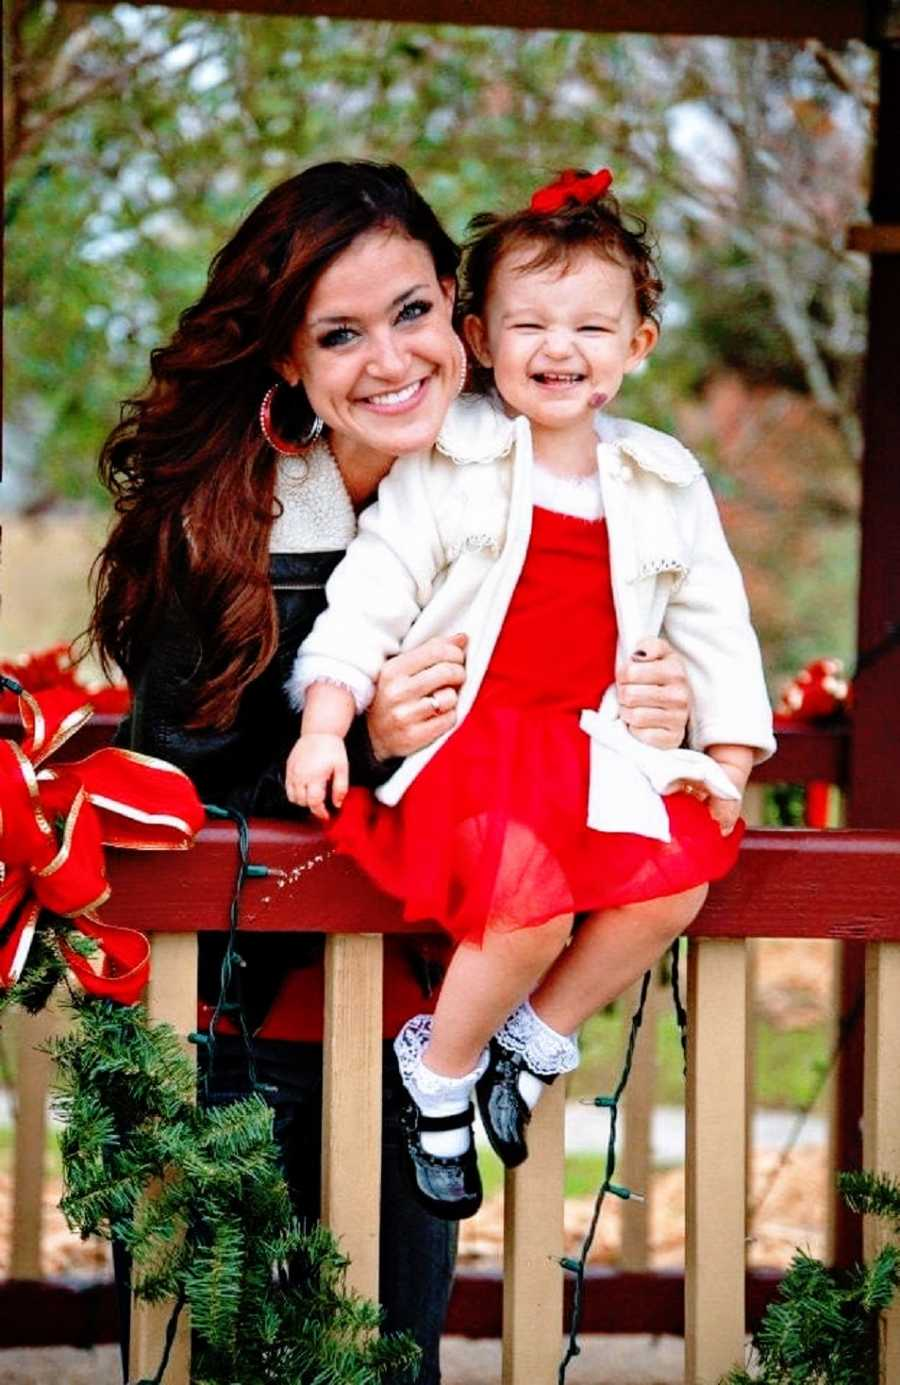 Mom holds young daughter dressed for Christmas